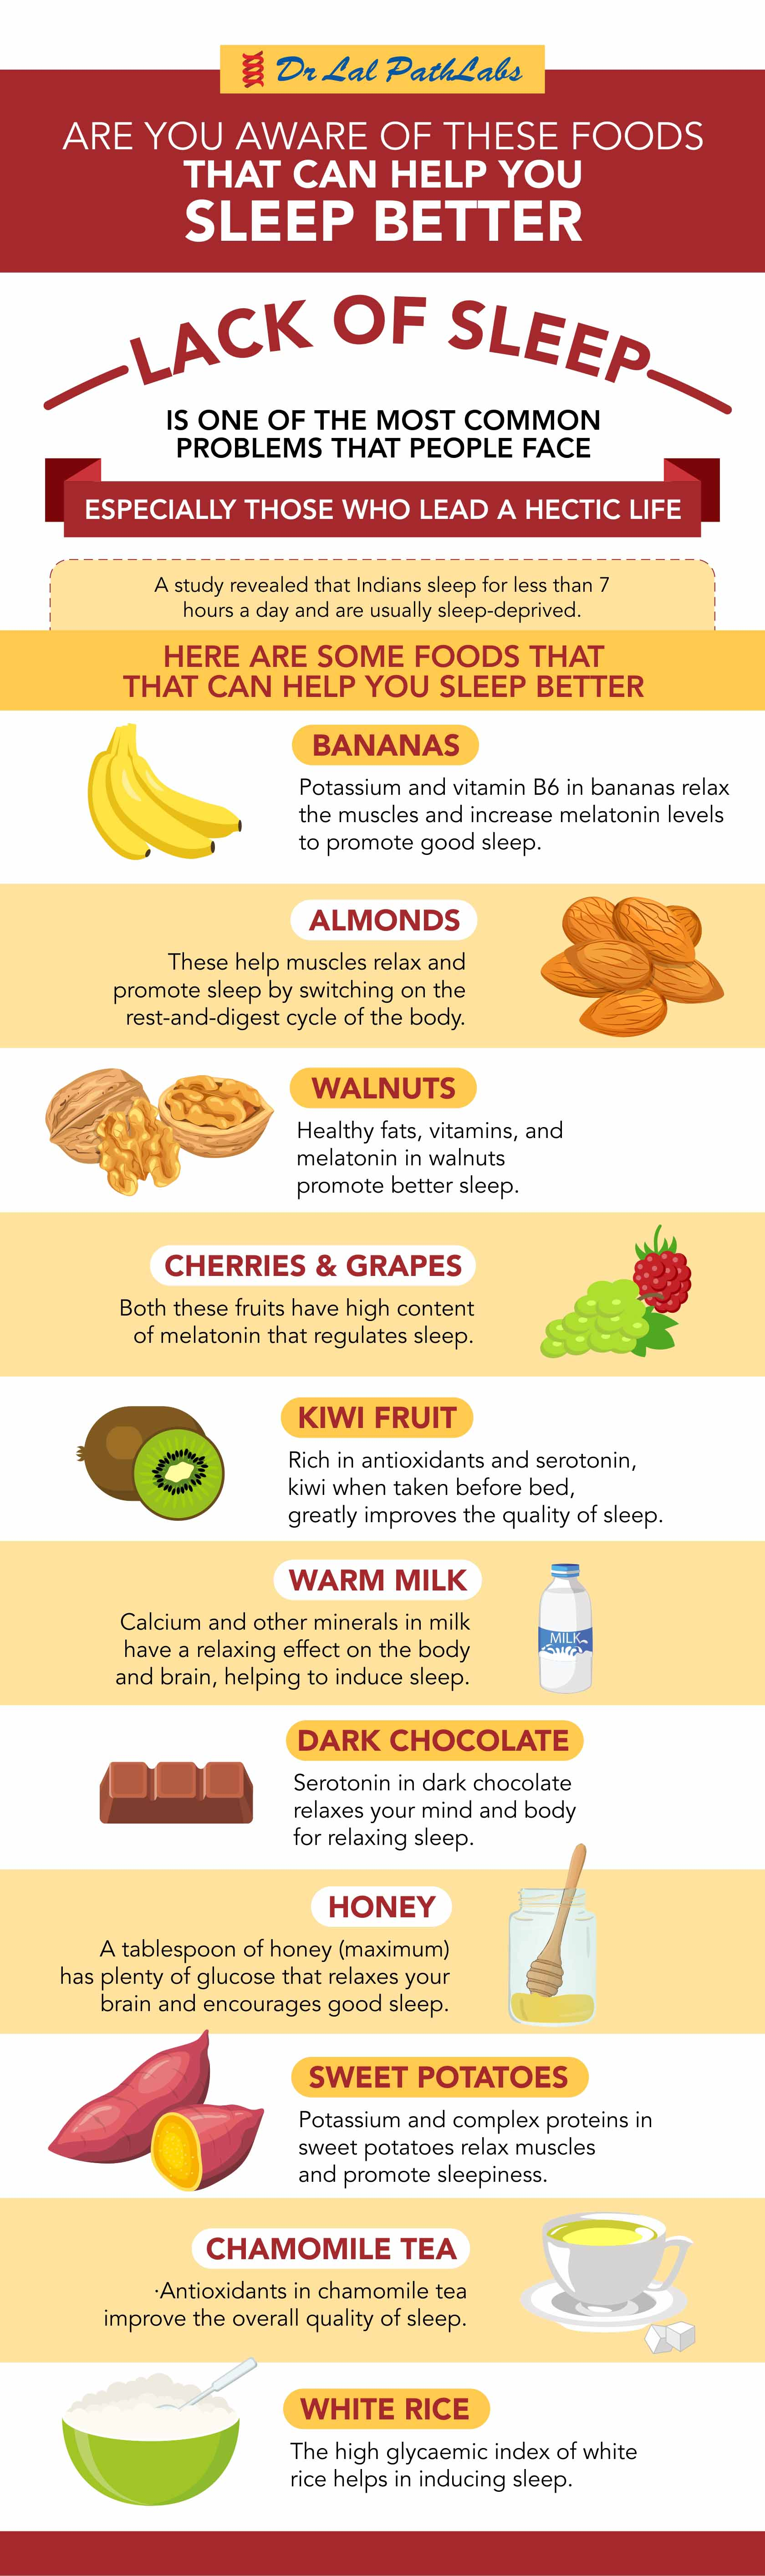 Are you aware of these foods that can help you sleep better